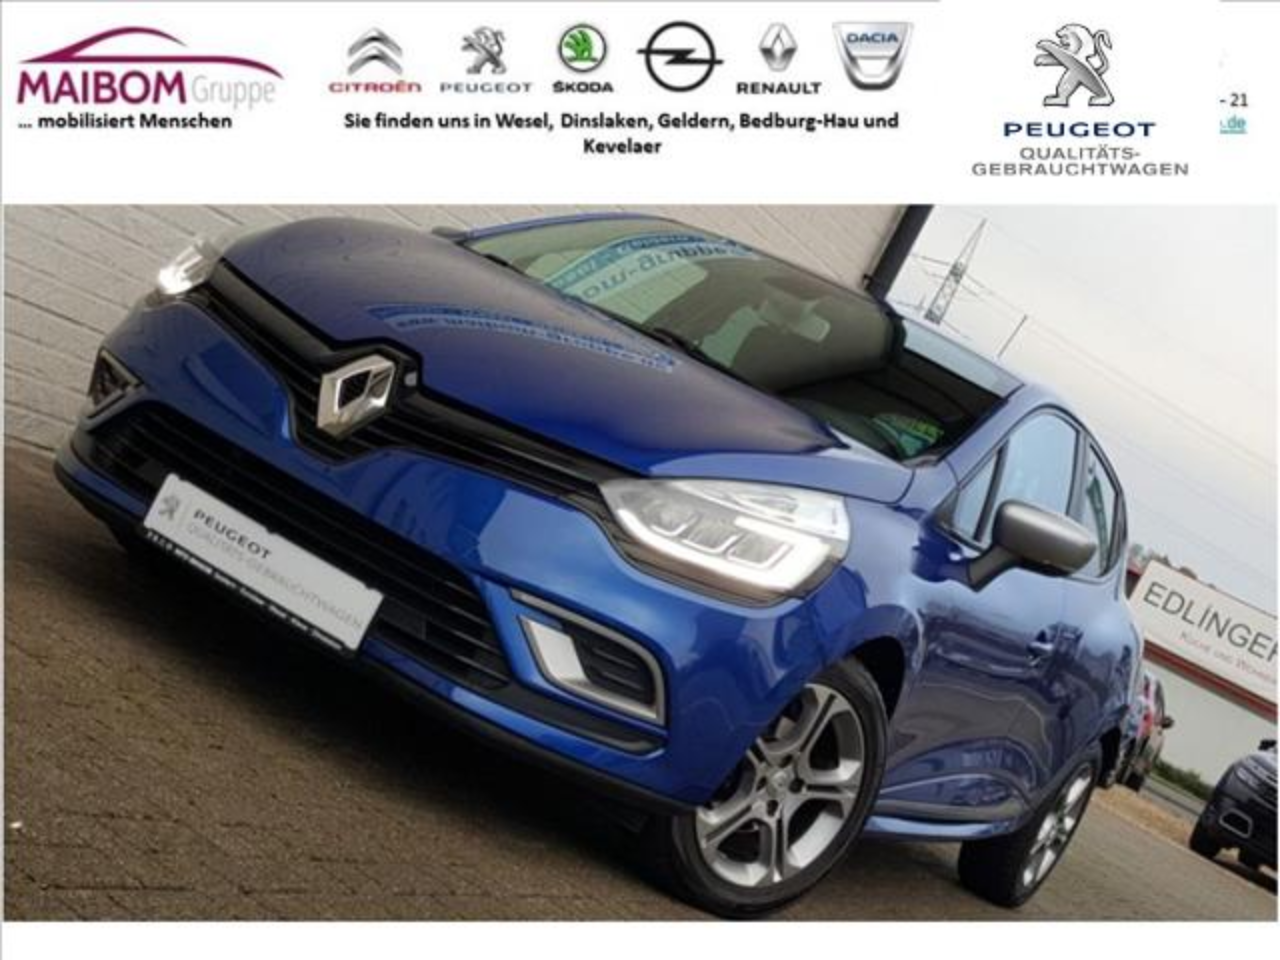 RENAULT-CLIO-289690_1.PNG